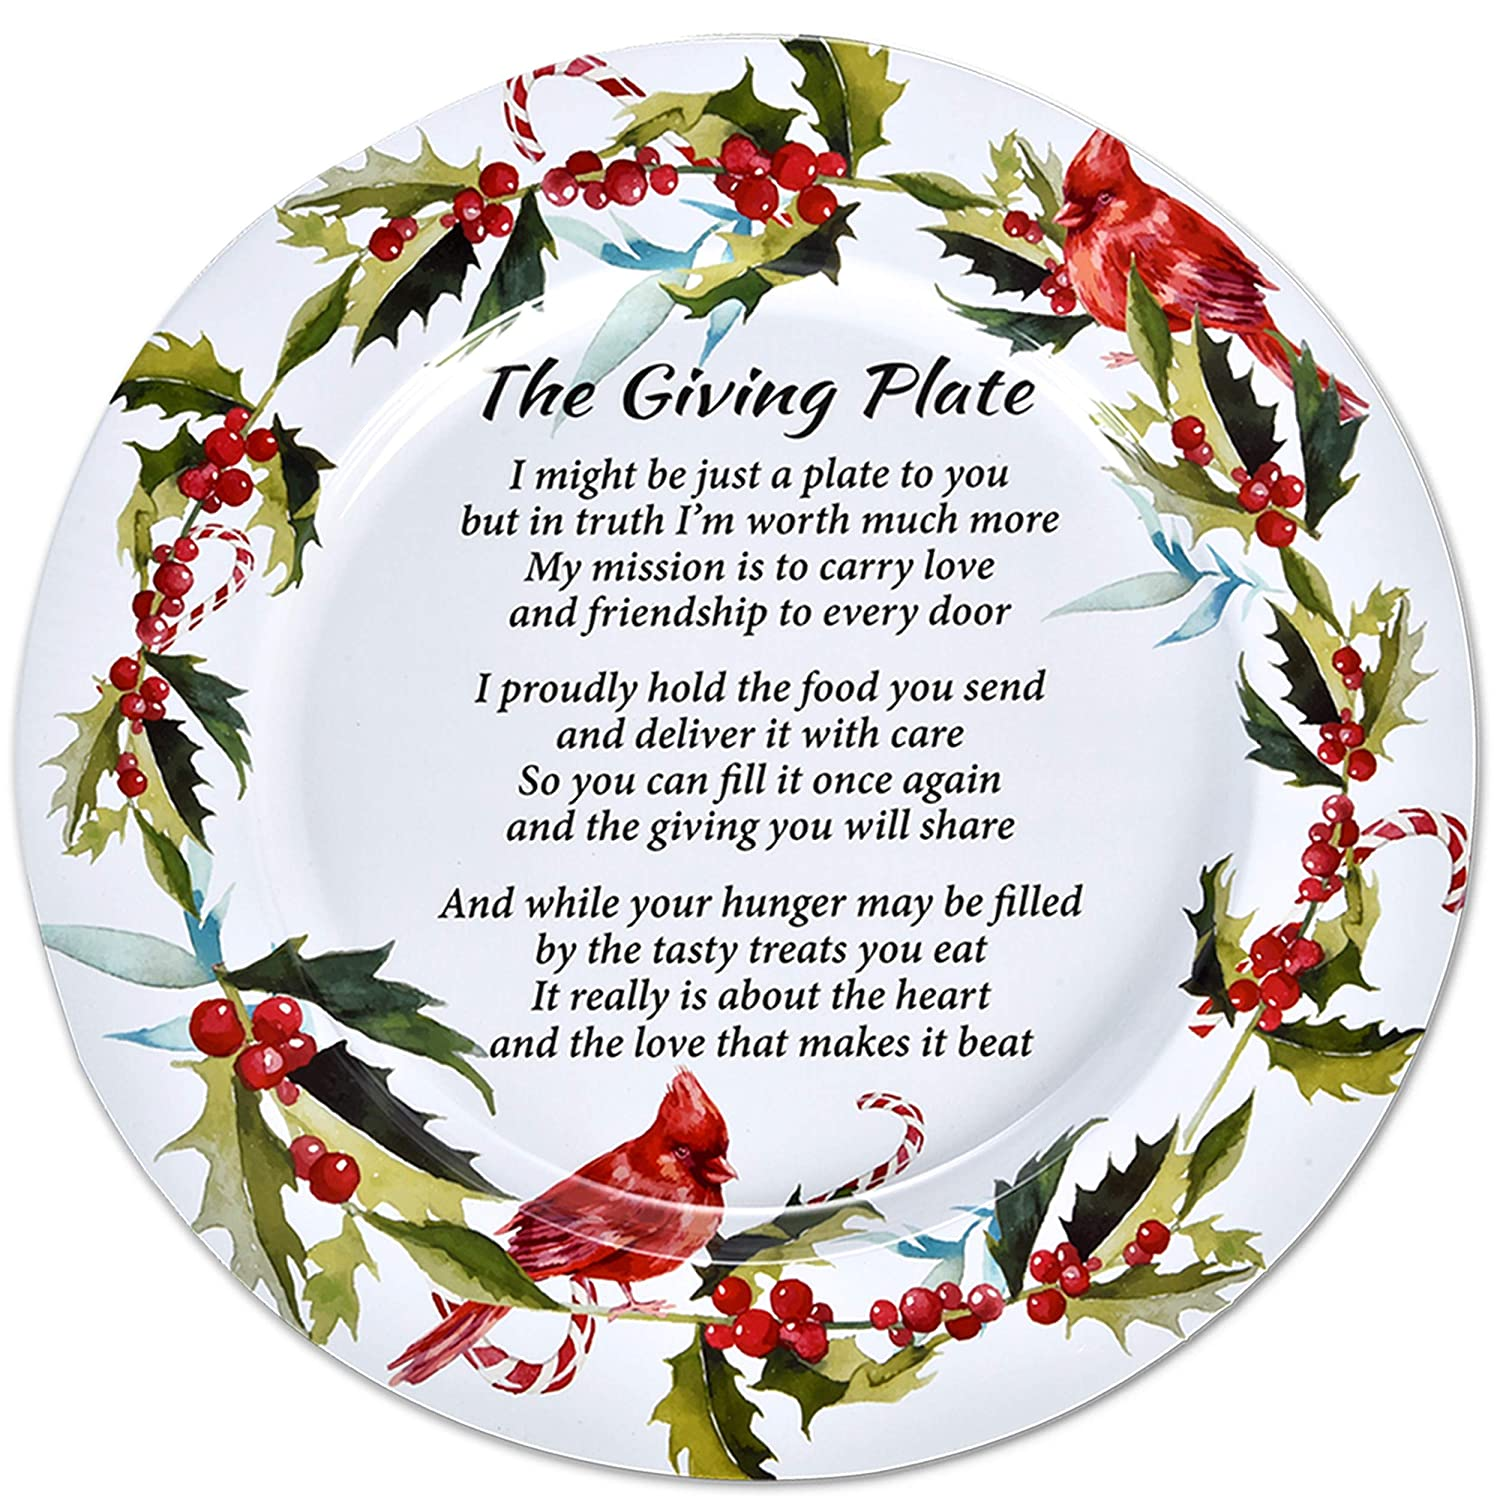 """Set of 4 Christmas Metal Tin Giving Plate with Poem 13"""" Diameter for Friendship Plates for Friends and Family Holiday Sharing Cookie Serving Platters Winterberry Cardinal Design by Gift Boutique"""